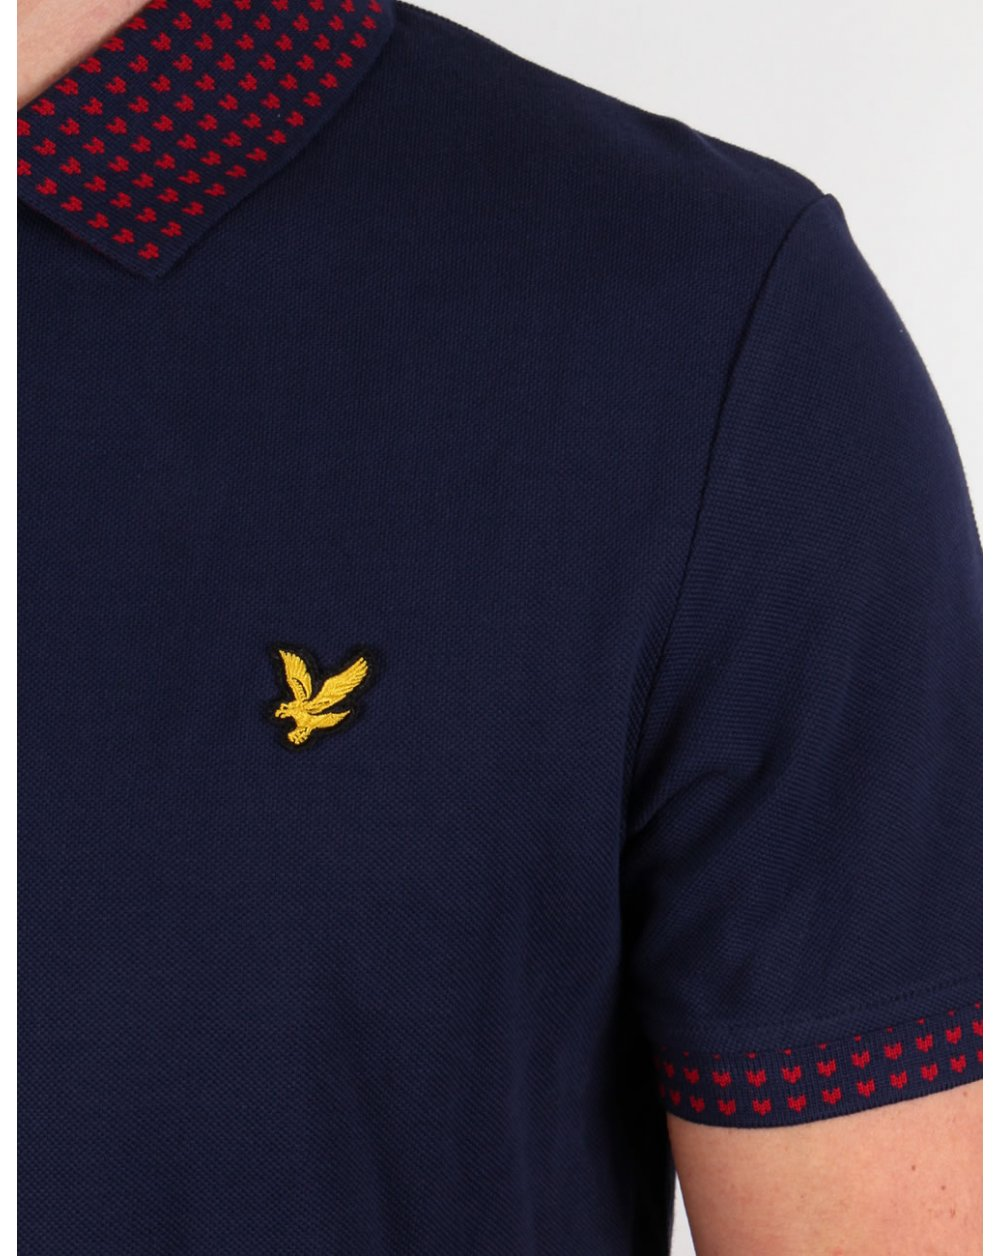 lyle and scott fairisle collar polo shirt navy blue mens cotton contrast. Black Bedroom Furniture Sets. Home Design Ideas